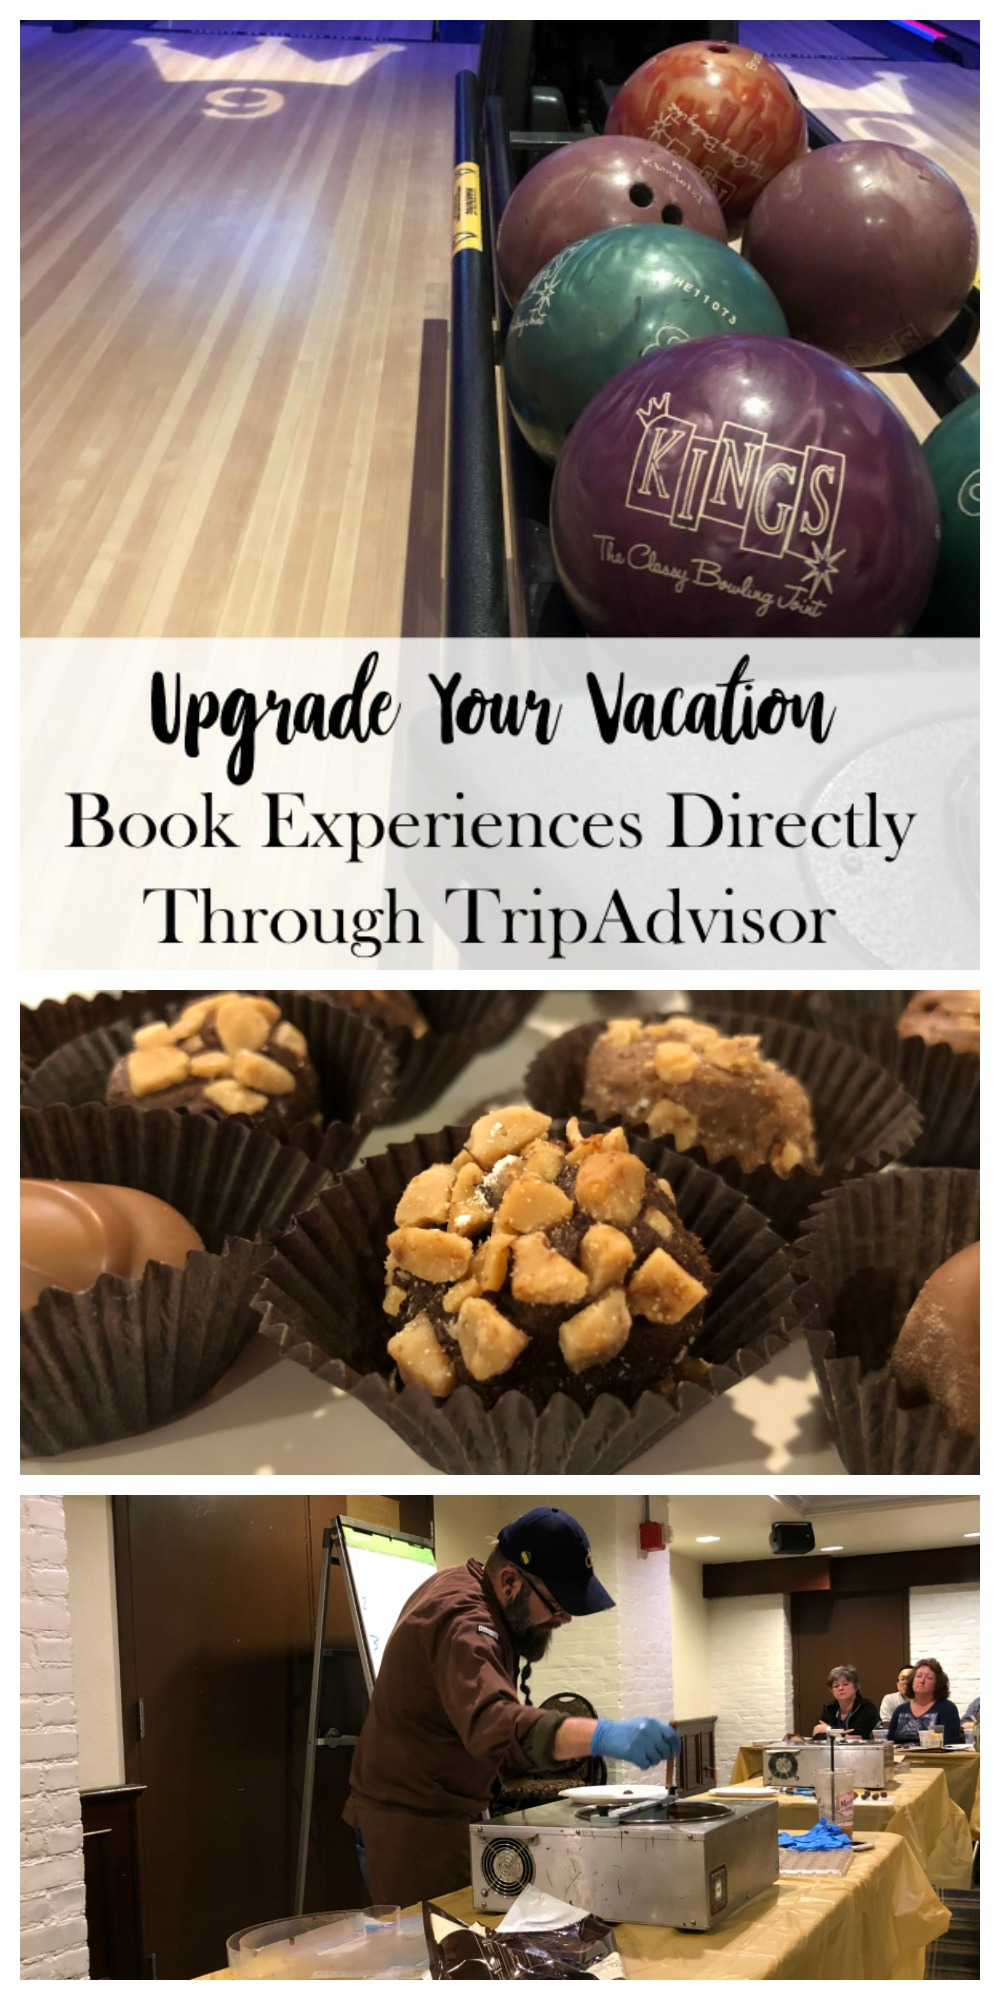 Upgrade Your Trip By Booking Experiences Directly Through TripAdvisor! They offer more than 56,000 bookable experiences in 2,500 destinations worldwide and with that many experiences it's safe to say there is something for everyone.